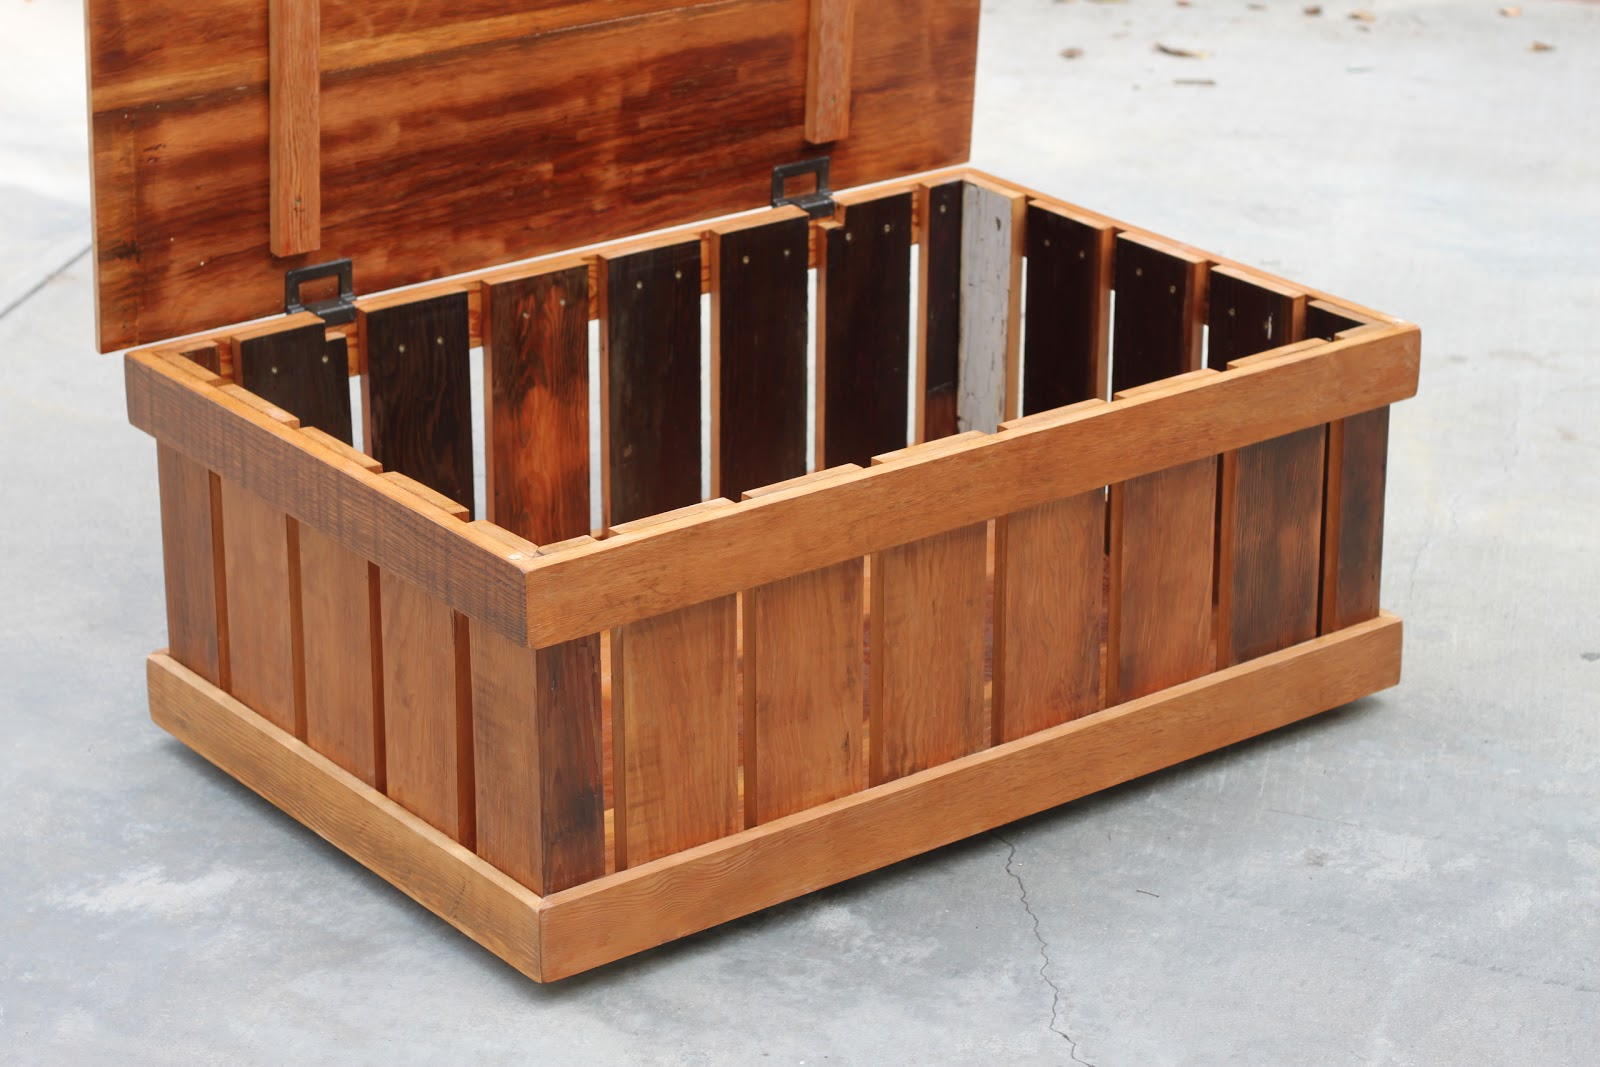 Arbor Exchange Reclaimed Wood Furniture Trunk Coffee Table